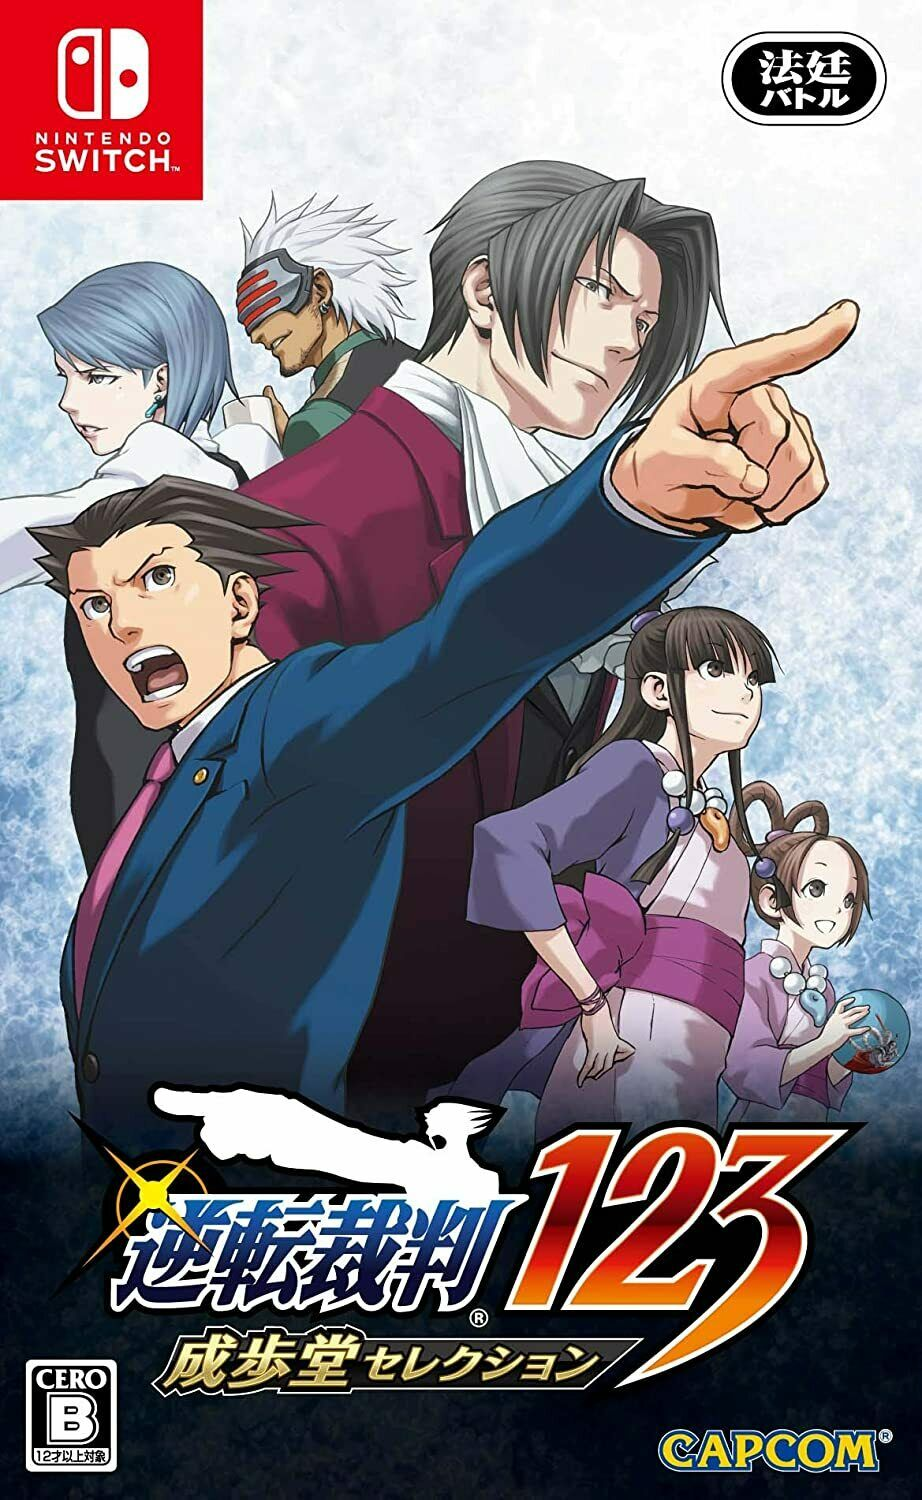 Phoenix Wright Ace Attorney 123 Switch Naruhodo Selection game Japanese Import 1